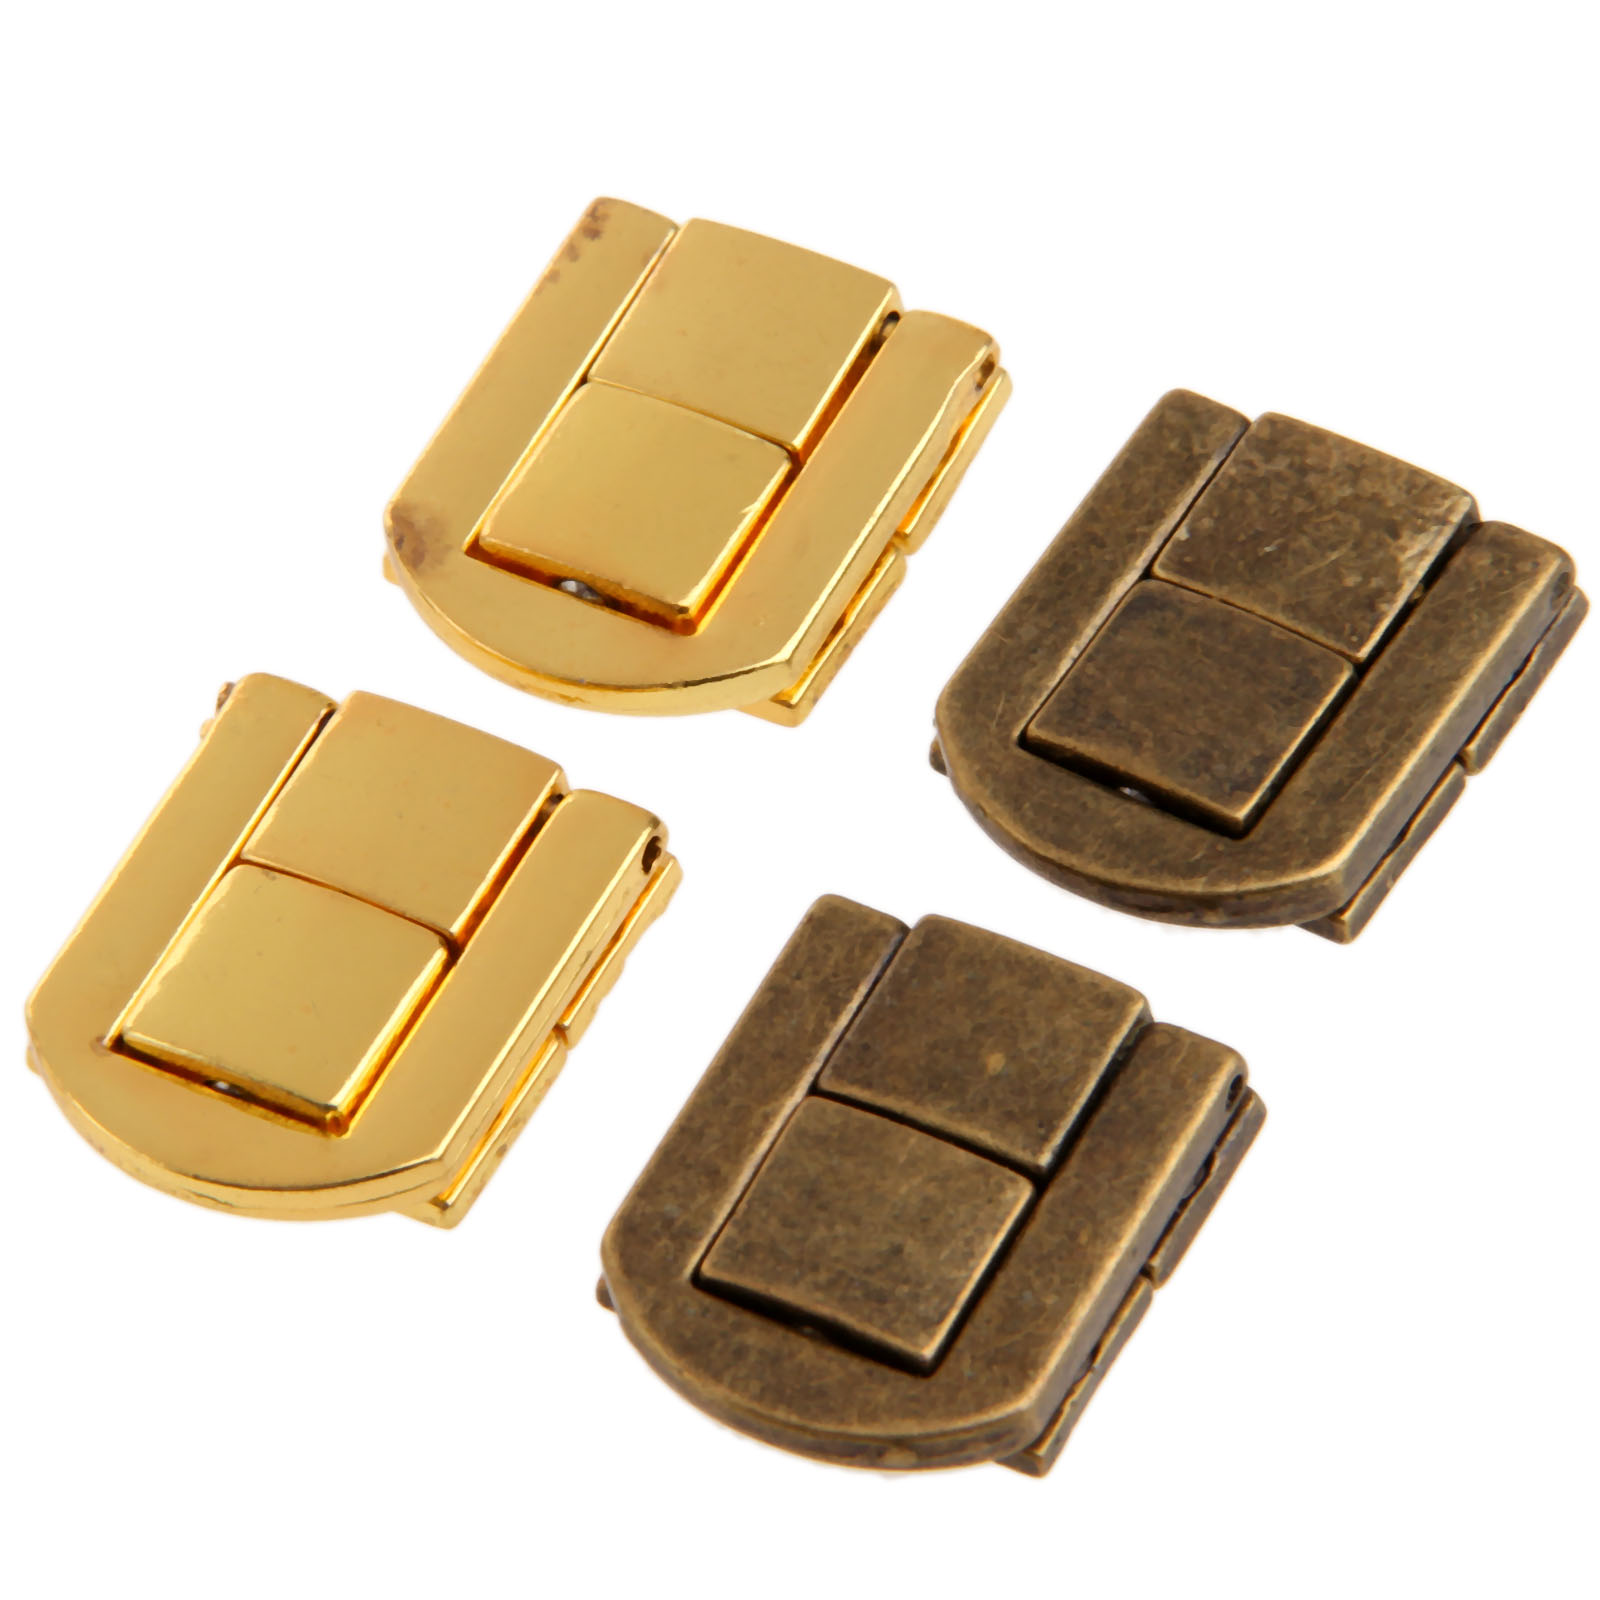 1Pc Antique Bronze/Gold Jewelry Chest Gift Wine Wooden Box Case Toggle Latch Hasp Leather Bag Handbag Purse Lock W/Screw 25x20mm